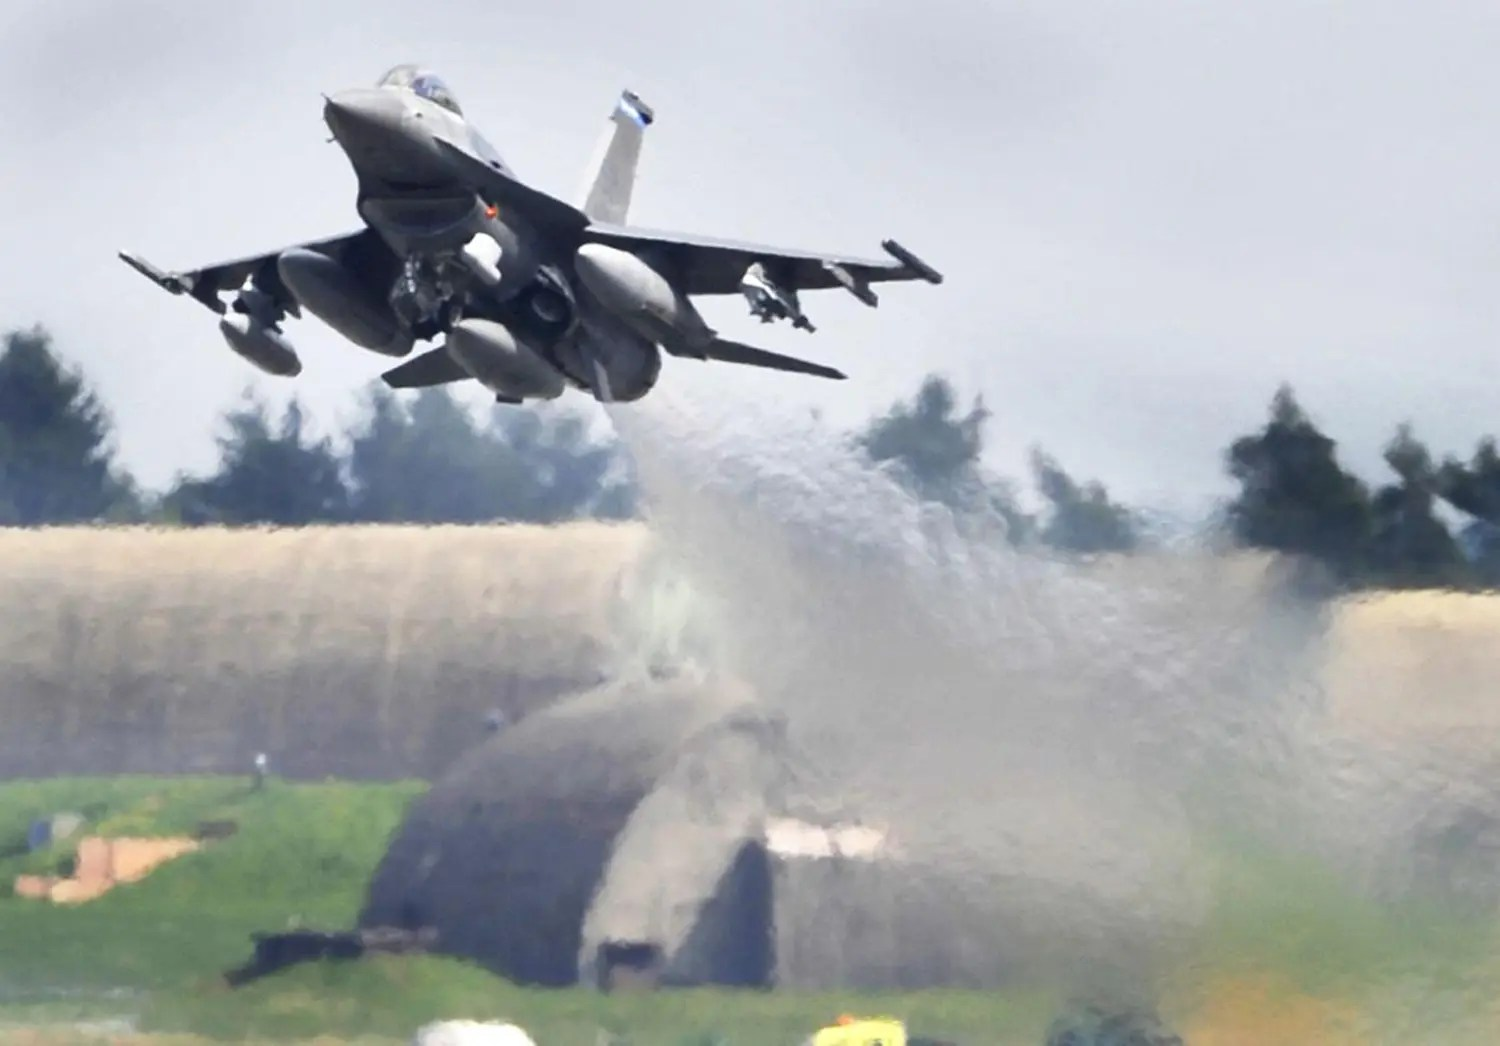 USA  fighter jet crashes in Germany, pilot survives